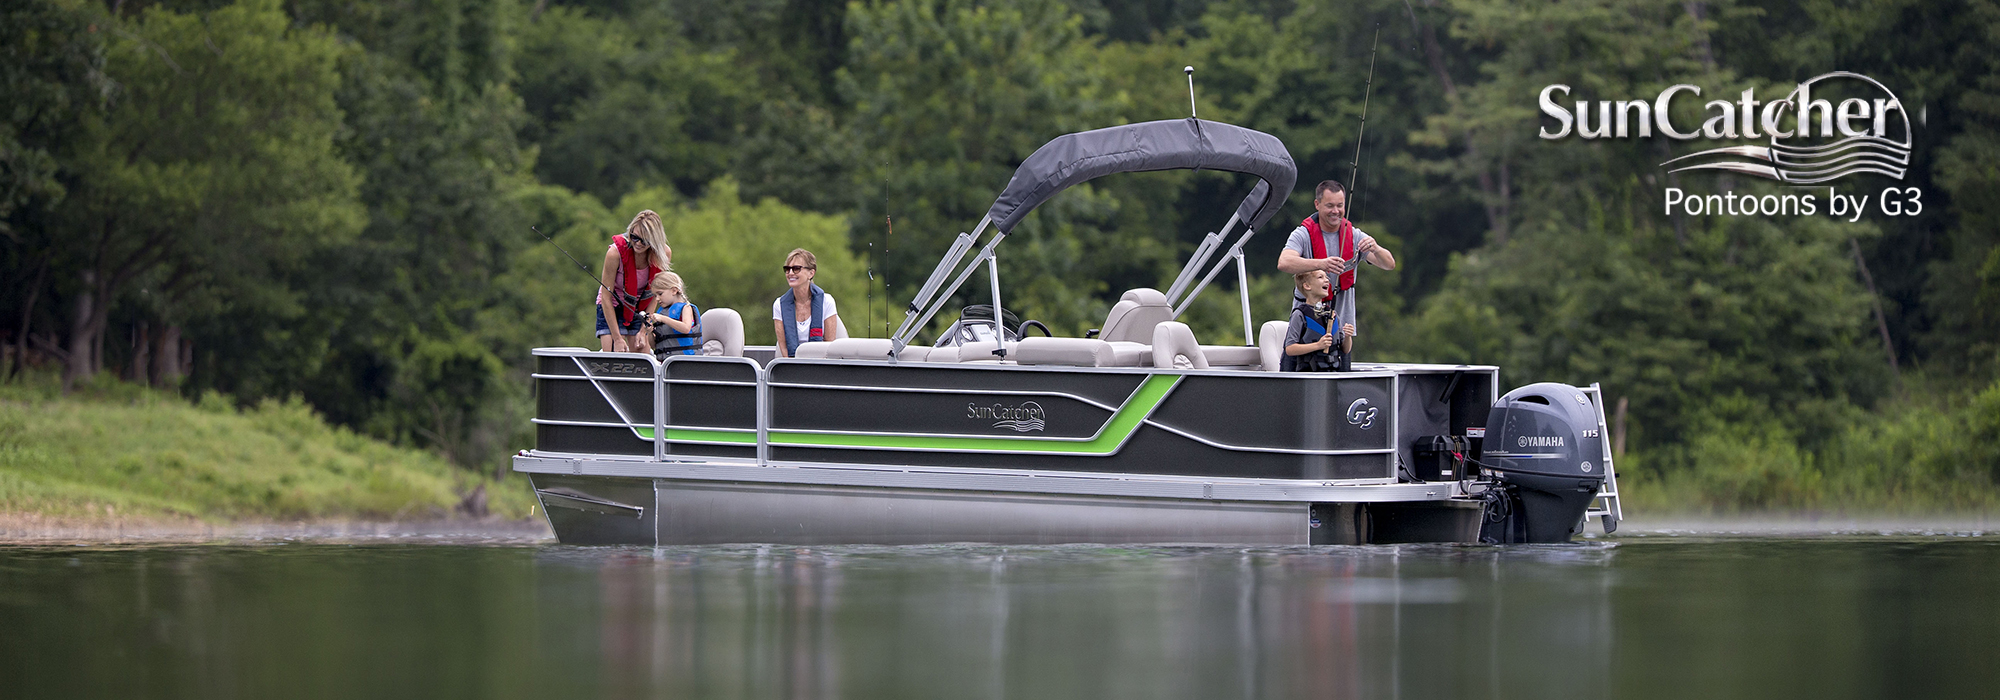 sun catcher pontoons x series x22